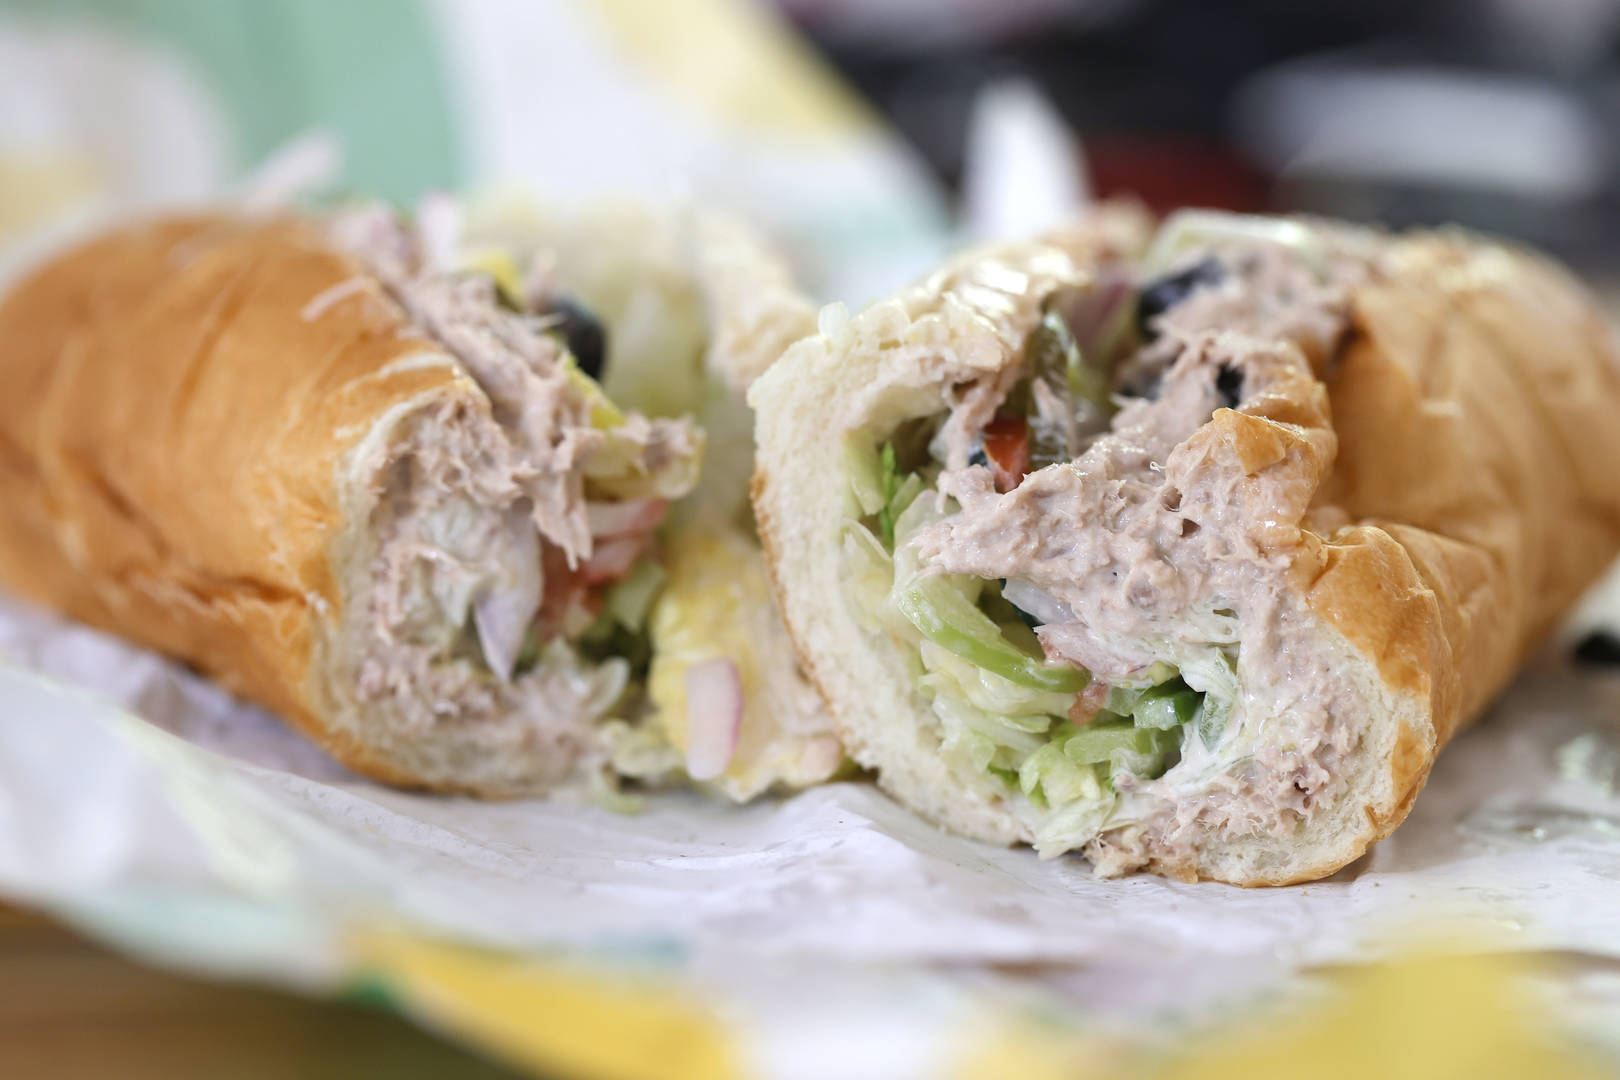 tuna sandwich from Subway is displayed on June 22, 2021 in San Anselmo, California. A recent lab analysis of tuna used in Subway sandwiches commissioned by the New York Times did not reveal any tuna DNA in samples taken from Subway tuna sandwiches. The lab was unable to pinpoint a species in the tuna samples from three Los Angeles area Subway sandwich shops.